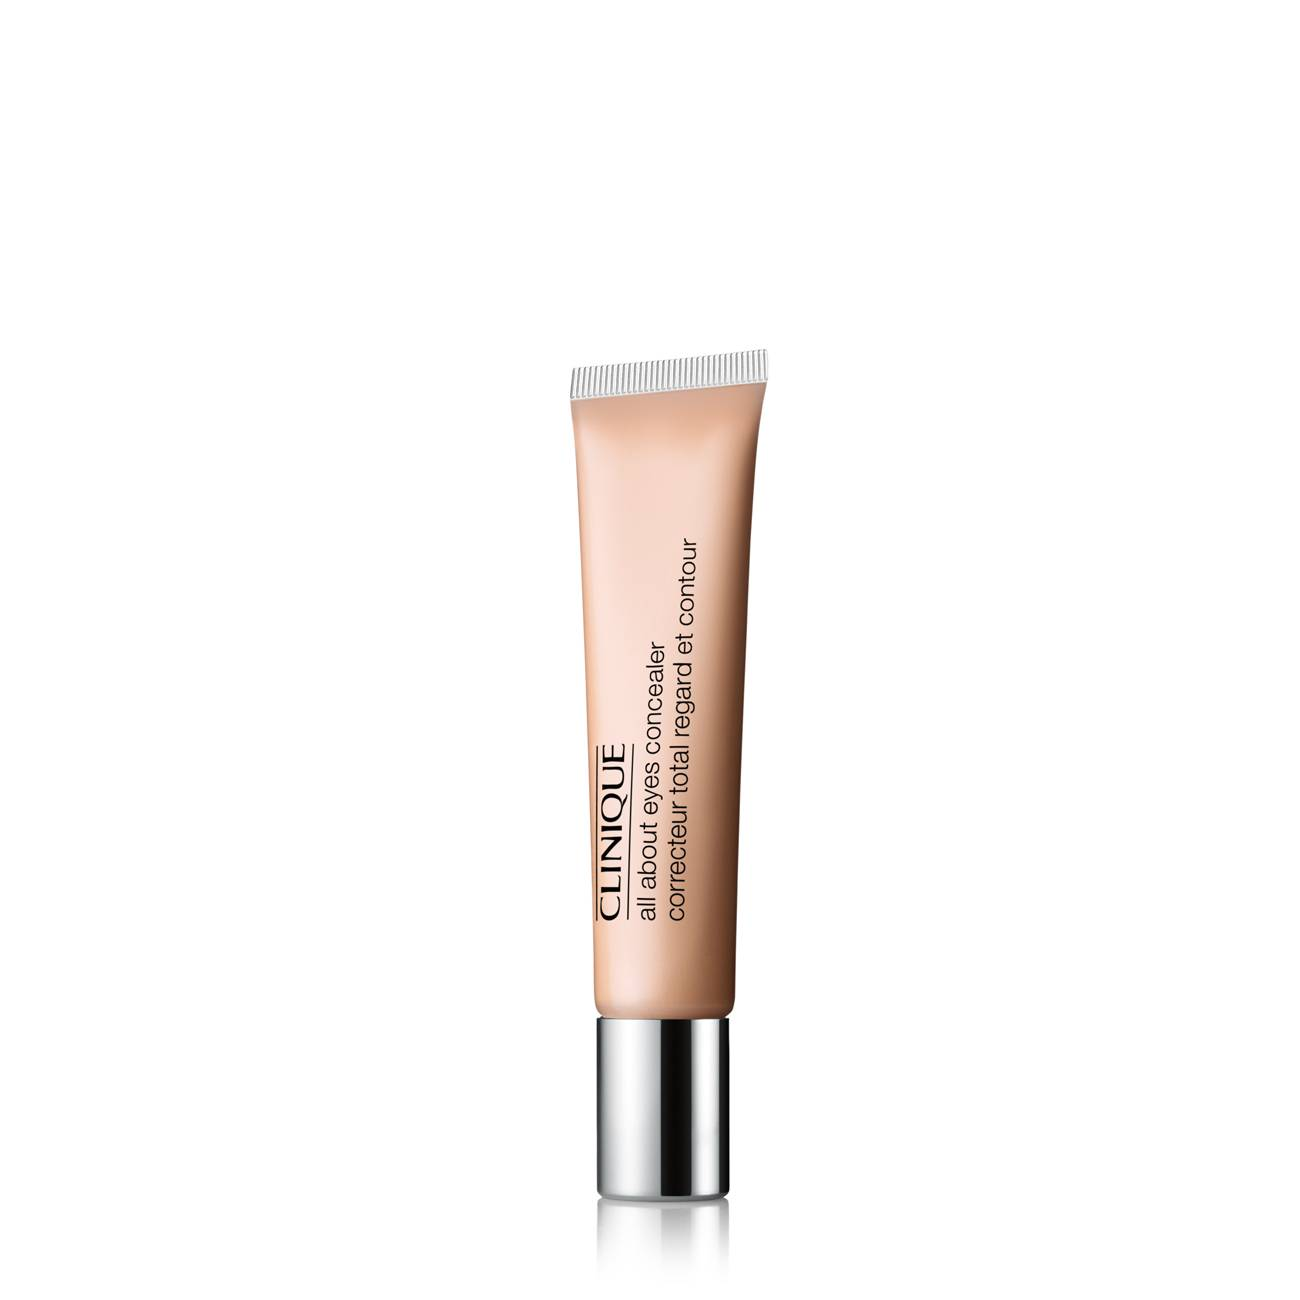 All About Eyes Concealer 03 10 Ml Clinique imagine 2021 bestvalue.eu